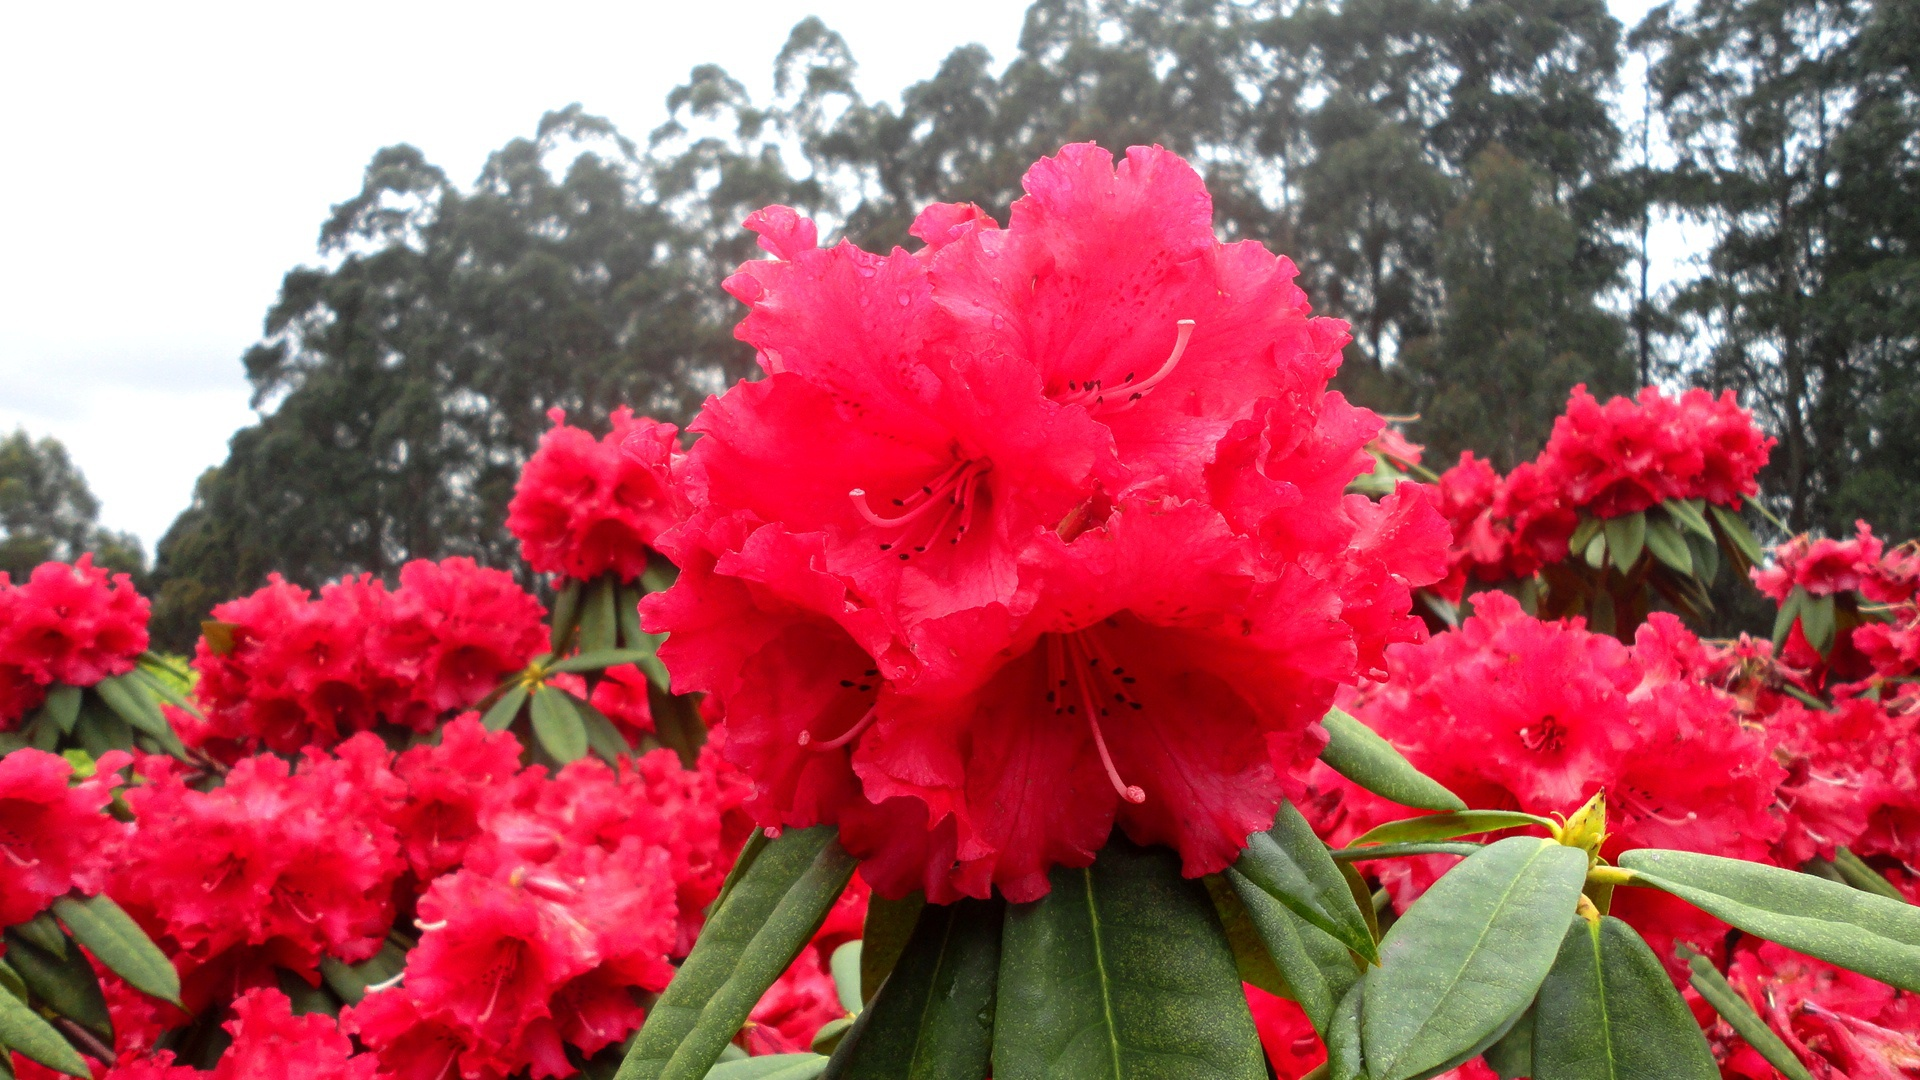 7 Reasons to Visit The National Rhododendron Garden